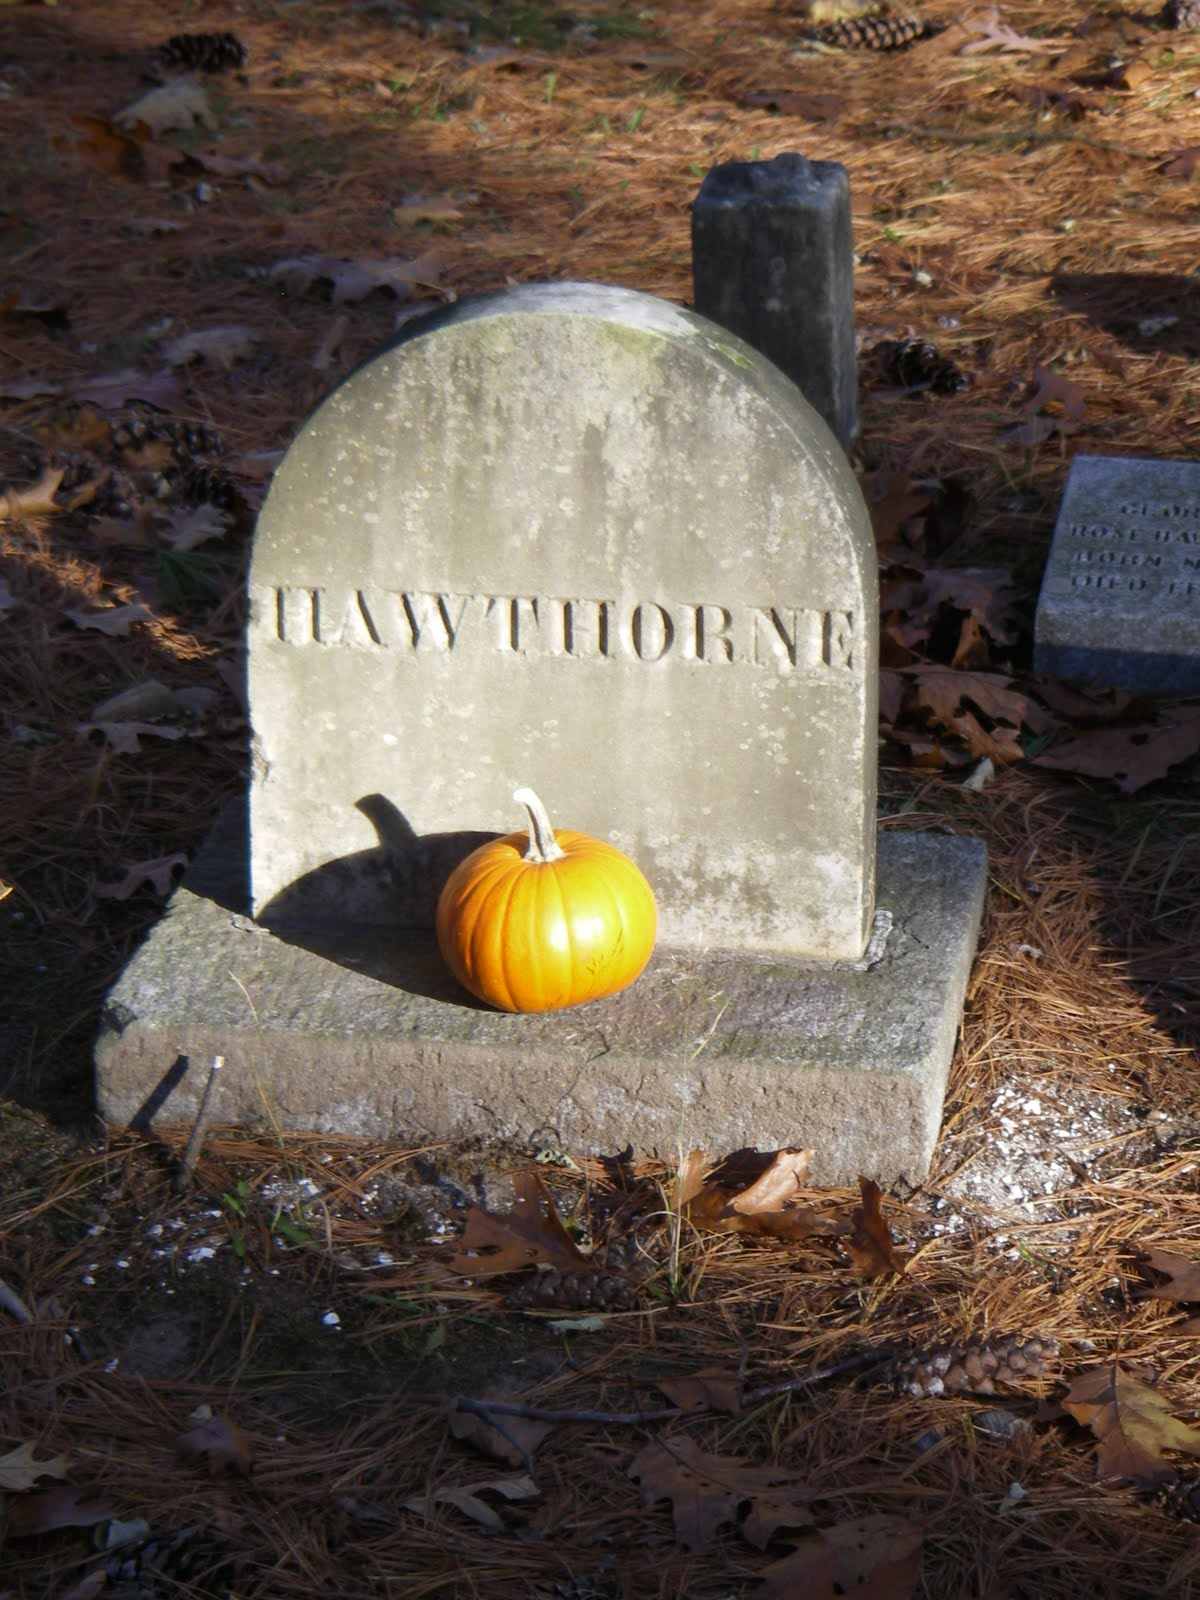 dipsy papa louisa alcott and nathaniel hawthorne are both buried in the concord cemetery